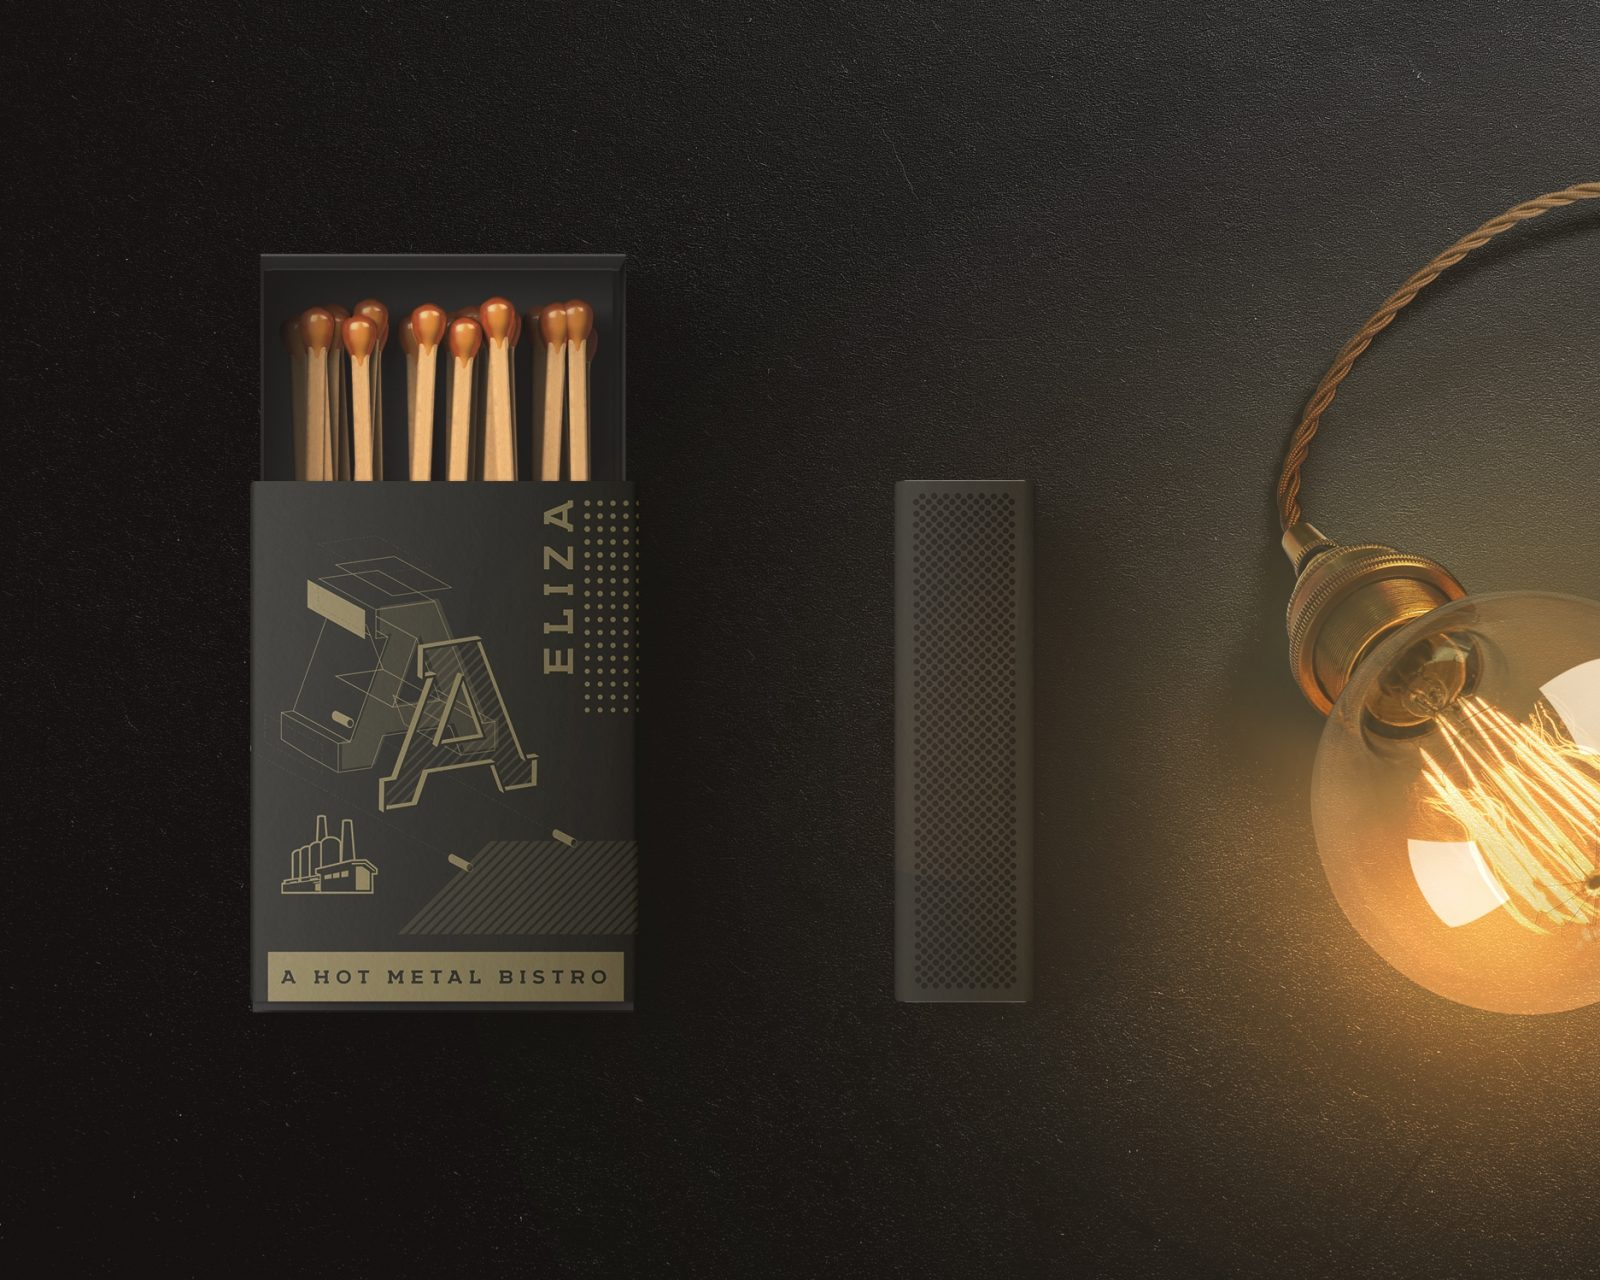 Branding for Hot Metal Bistro with A Past That Can't Be Forgotten